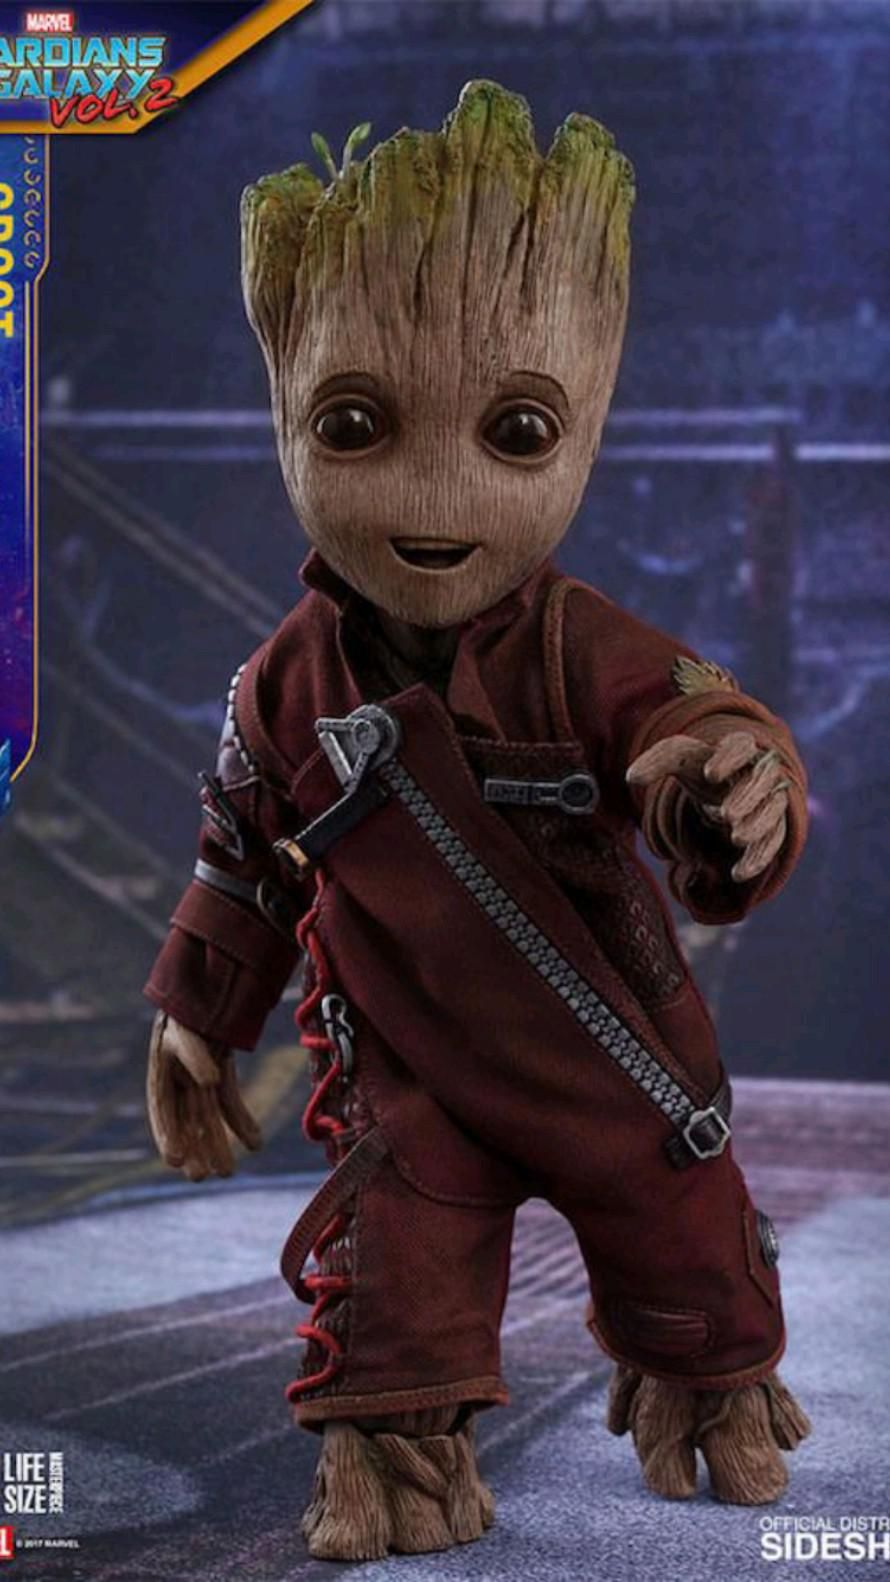 Groot Wallpapers #foryou #groot #viral   #goviral #avengers #guardianofthegalaxy #marvel